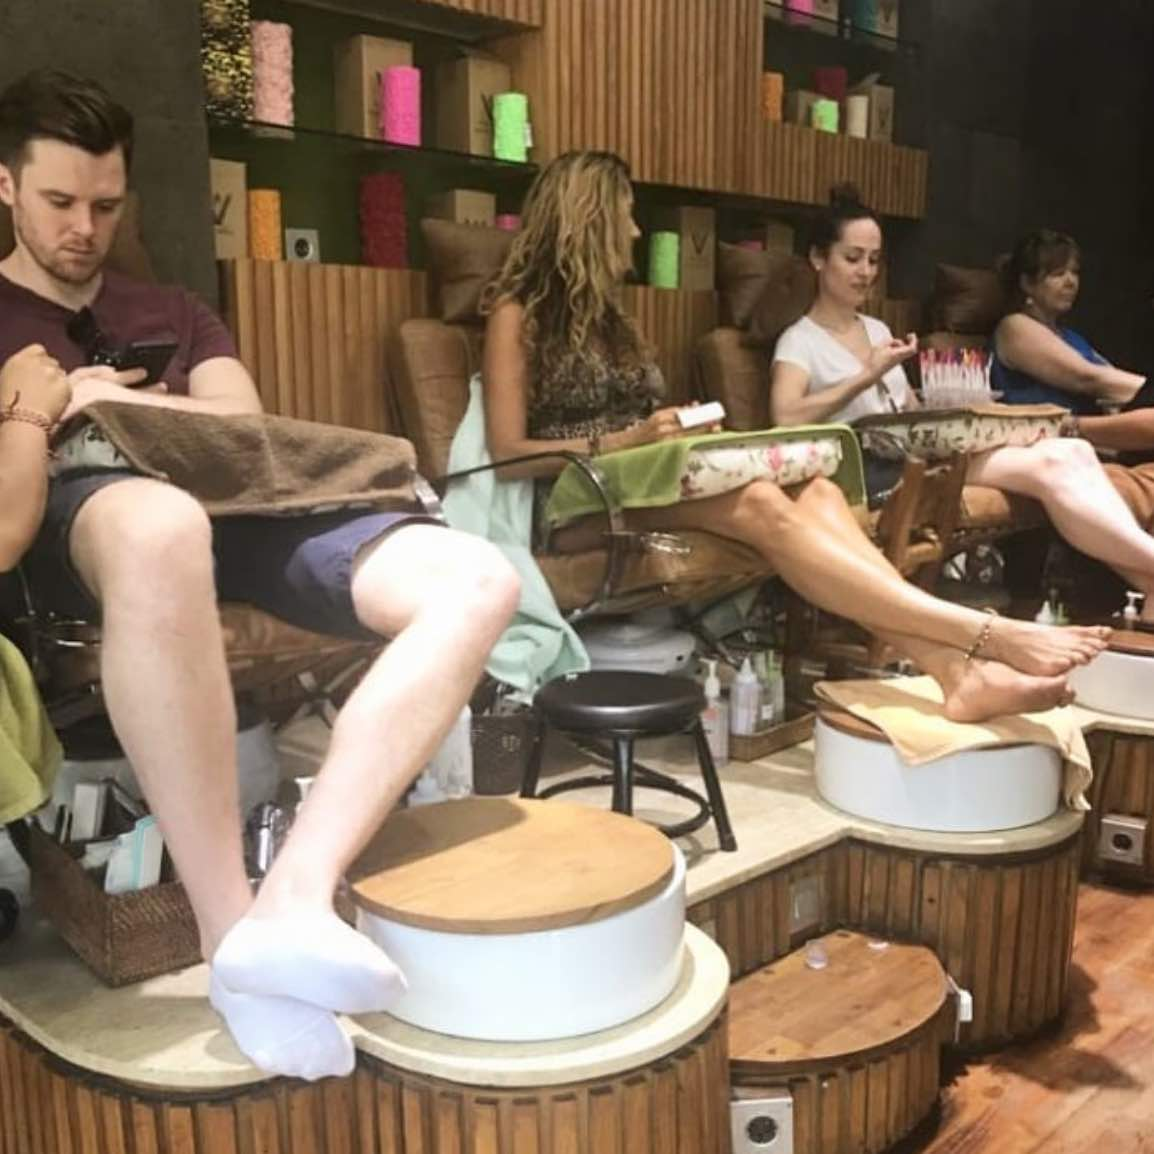 vive salon and spa in ubud bali - where to get your hair and nails done